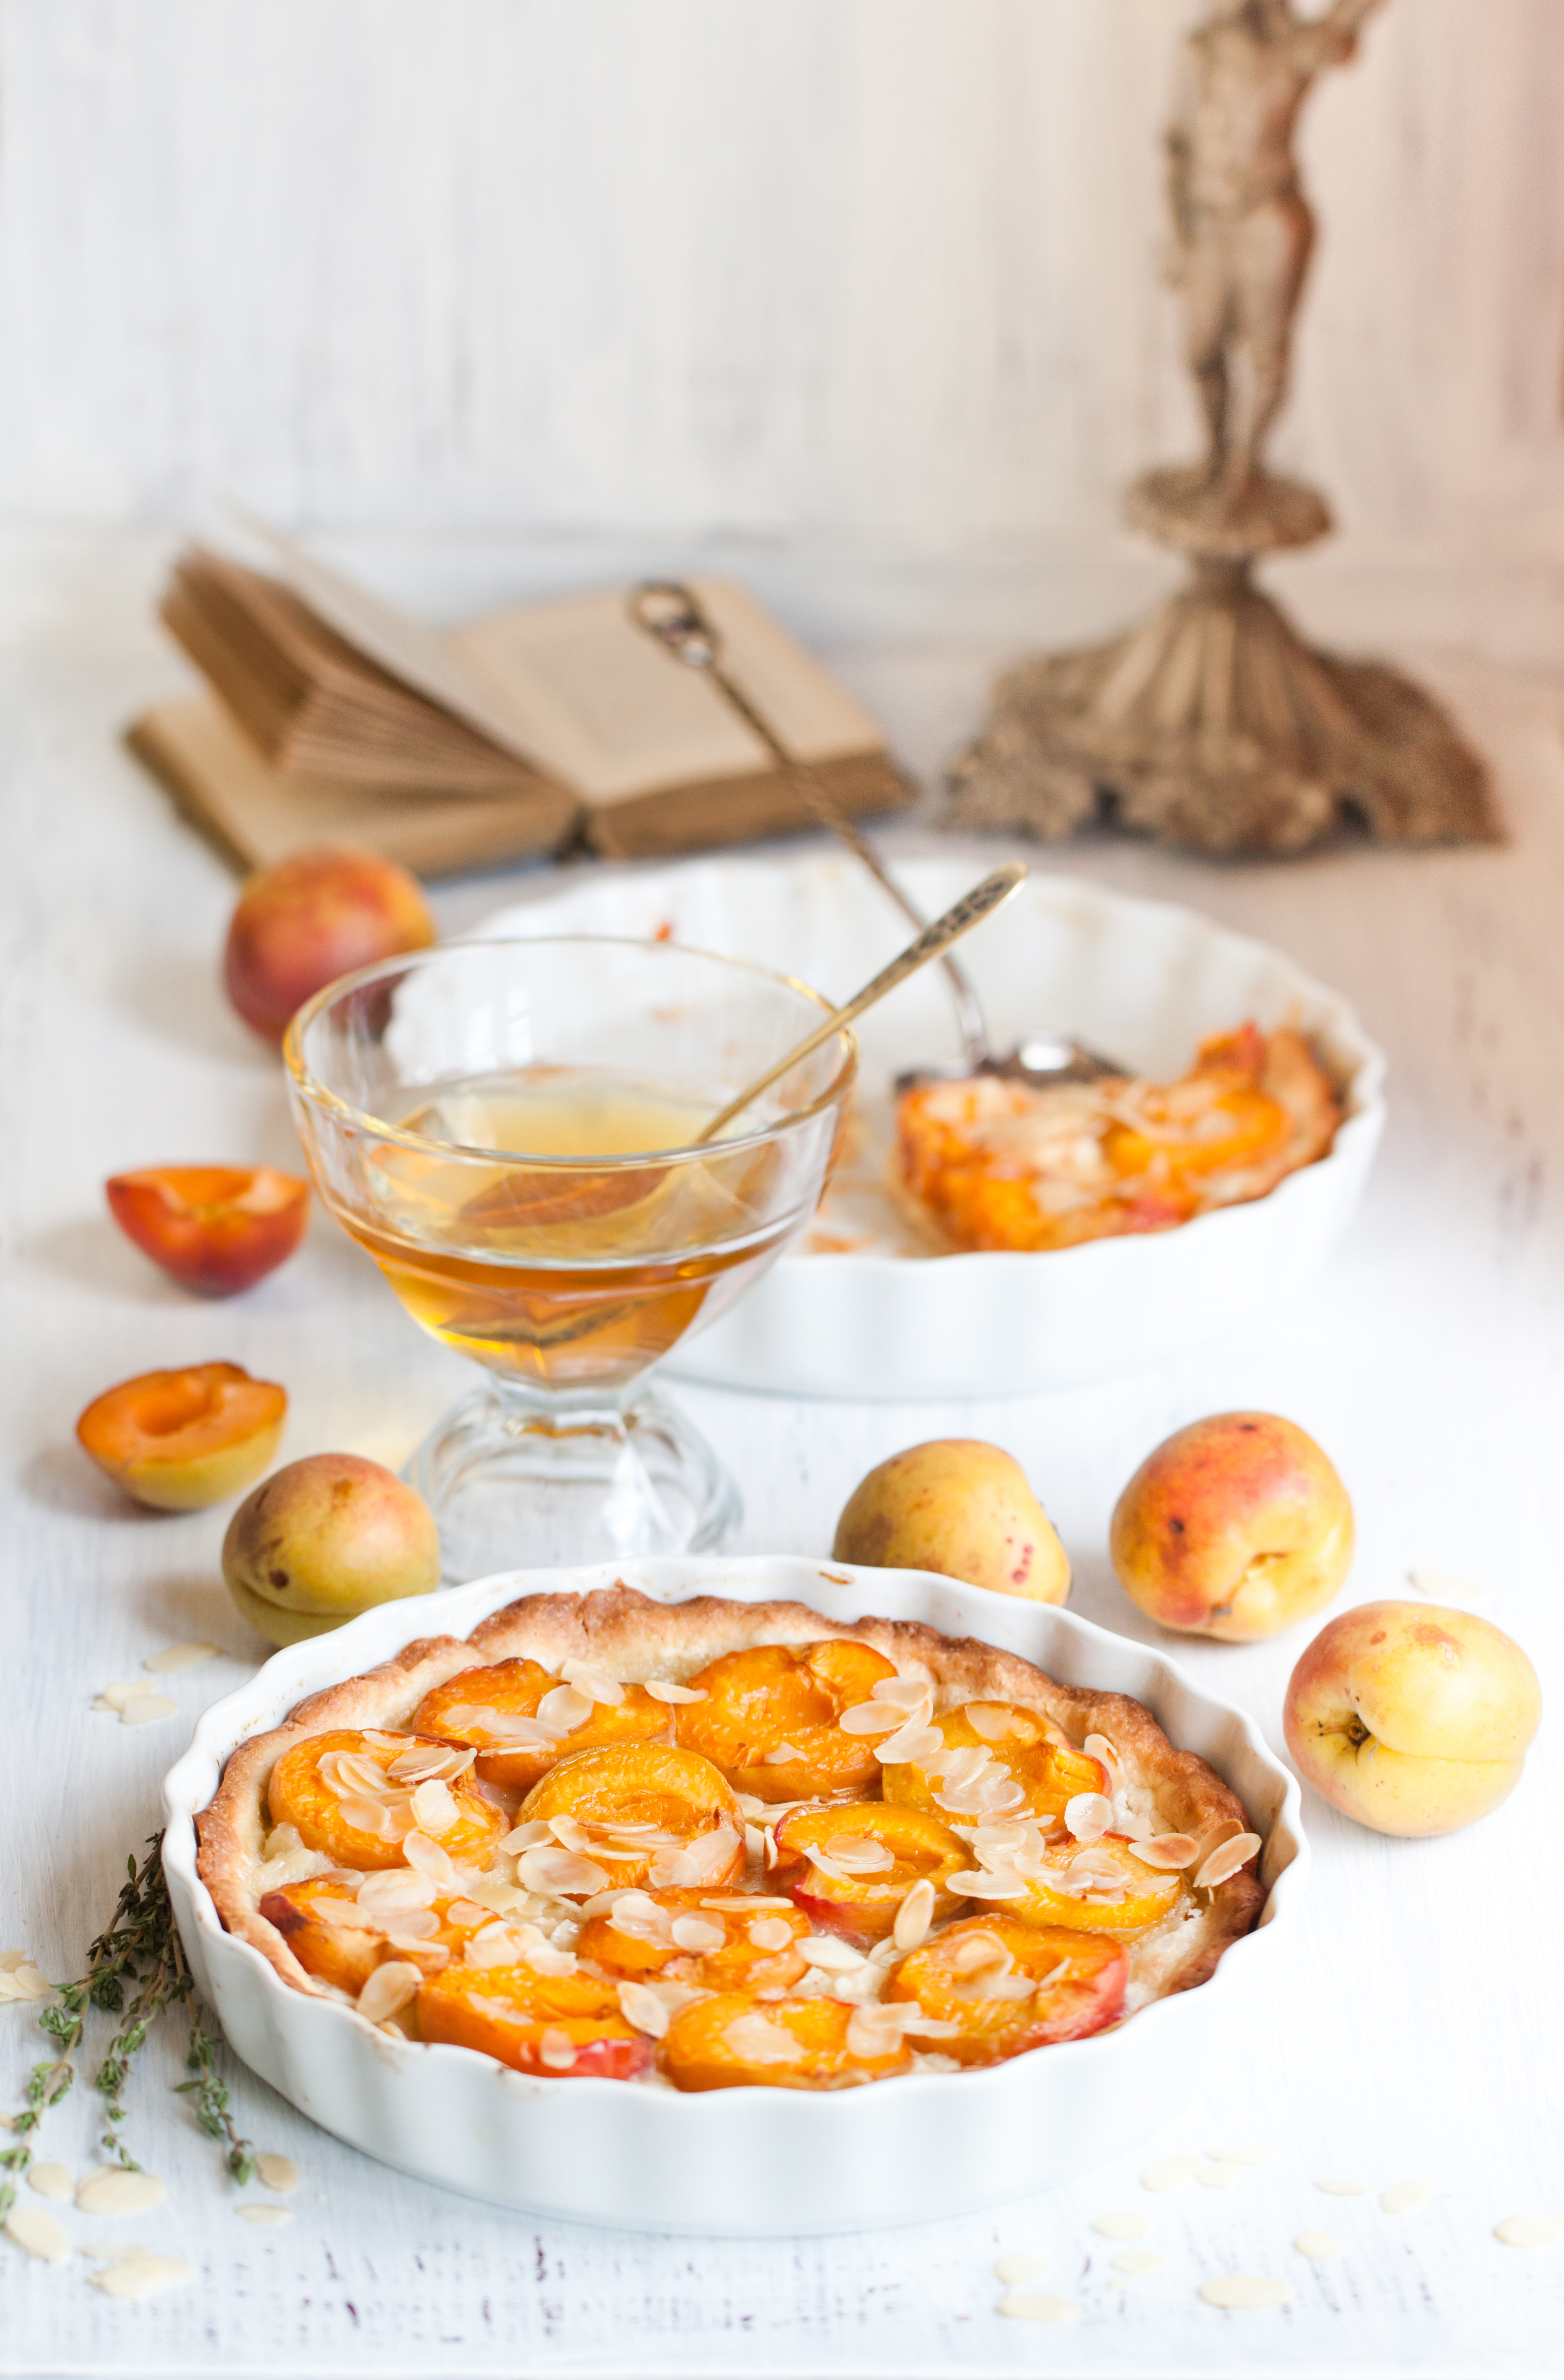 Breakfast with homemade apricot tart with almonds, fresh apricots and honey on white wooden table